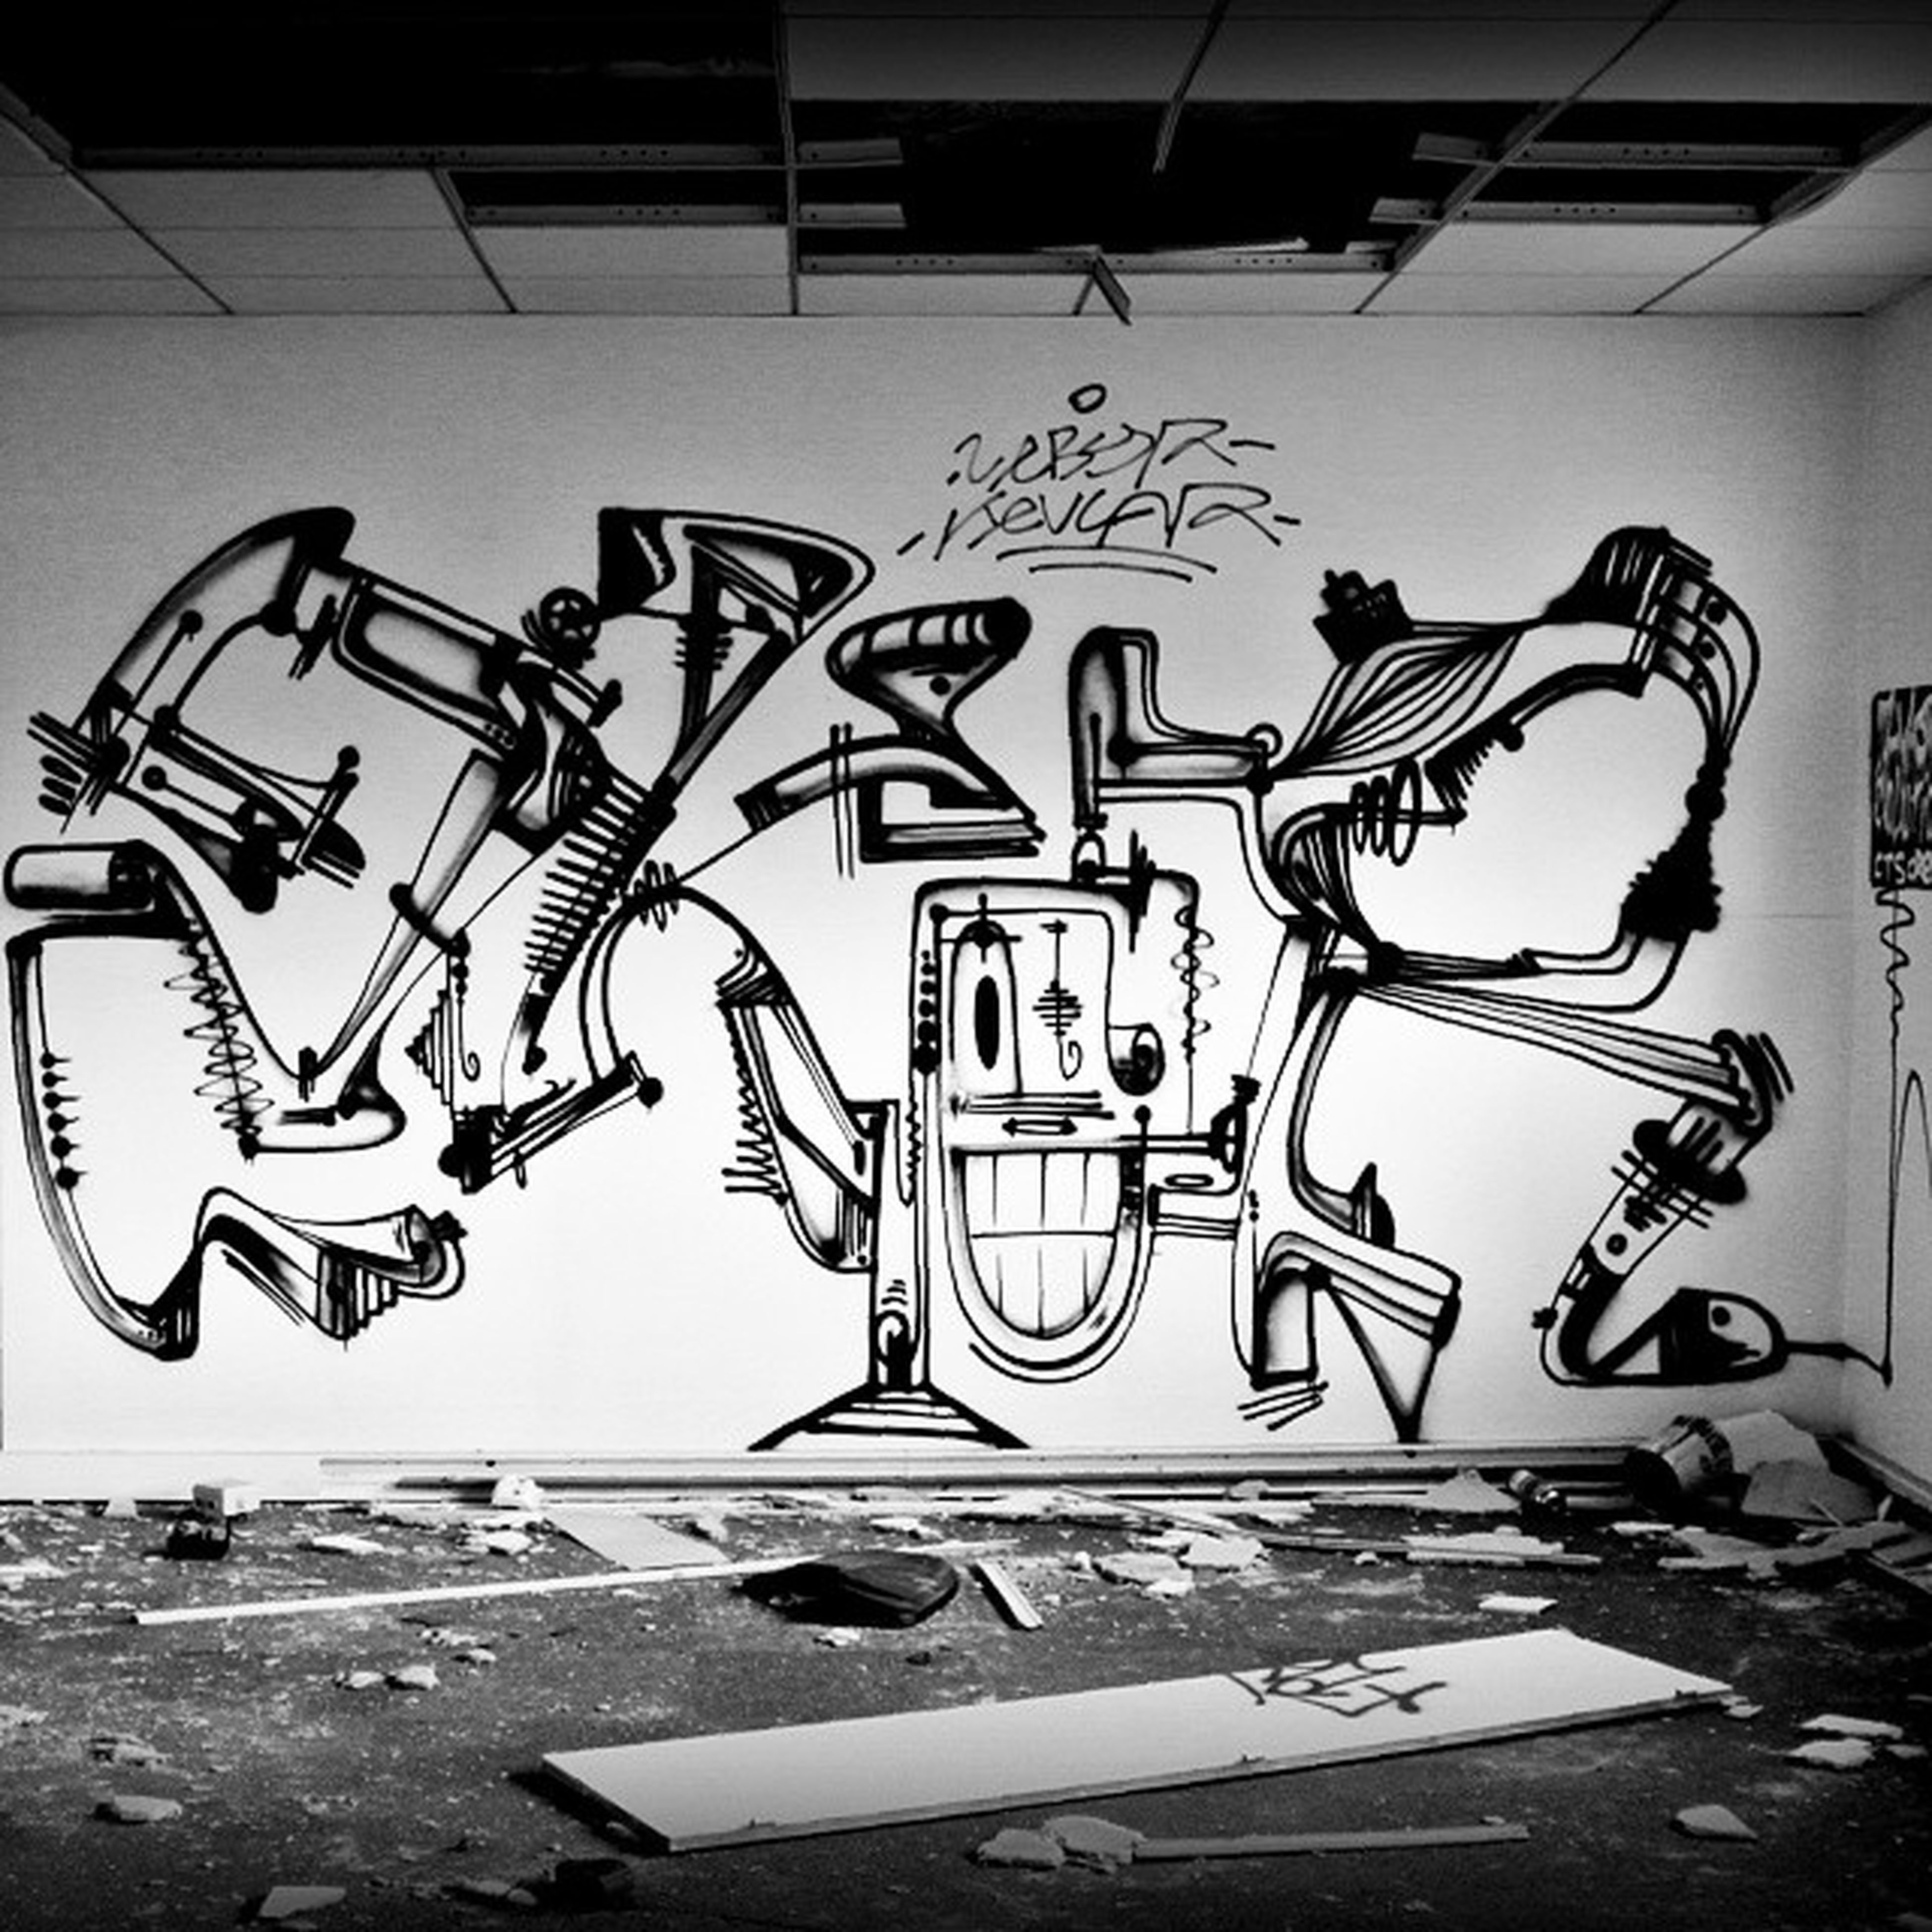 graffiti, text, art, western script, creativity, art and craft, communication, human representation, wall - building feature, built structure, bicycle, architecture, sign, street art, capital letter, street, transportation, day, road